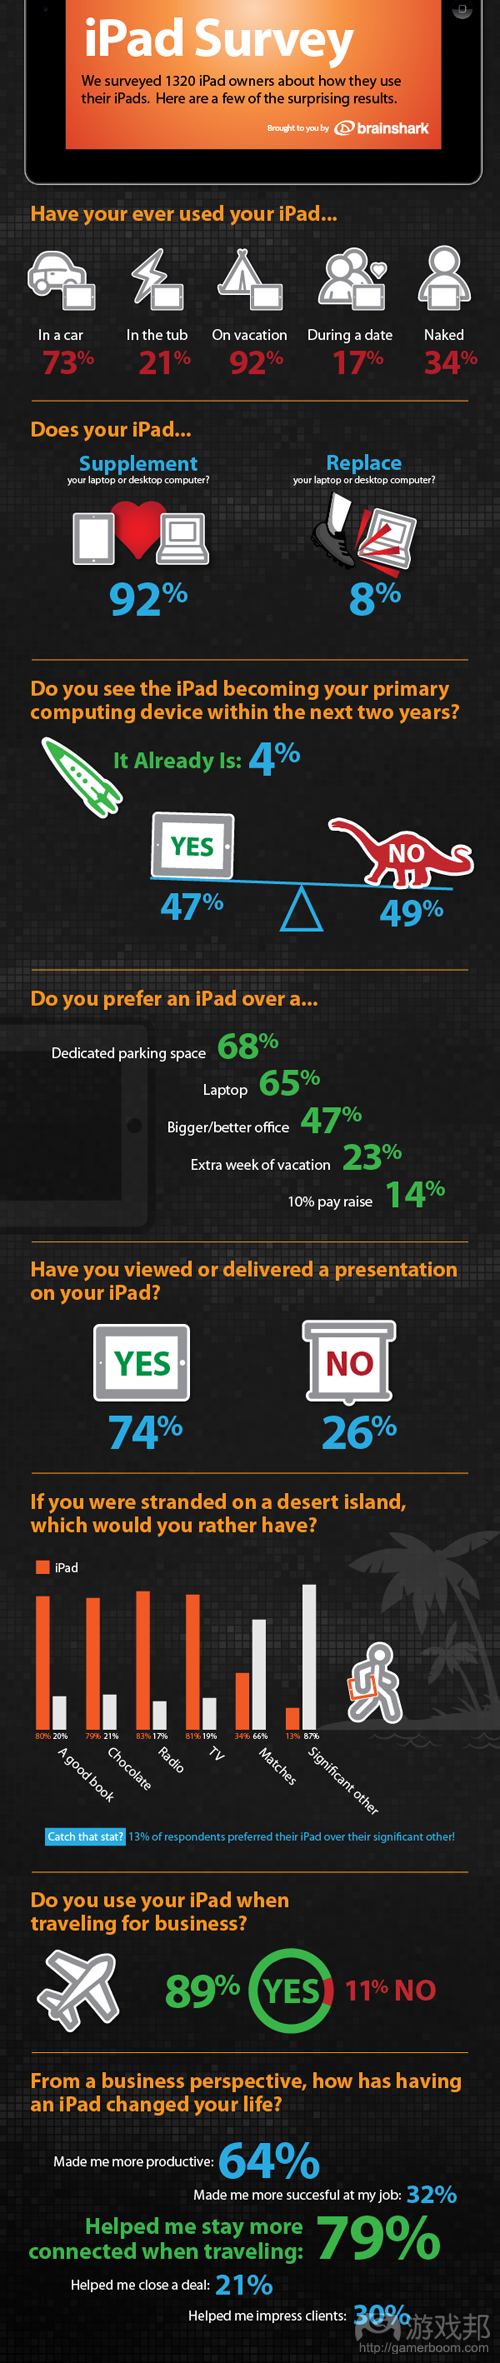 Crazy iPad Owners Infographic(from brainshark)